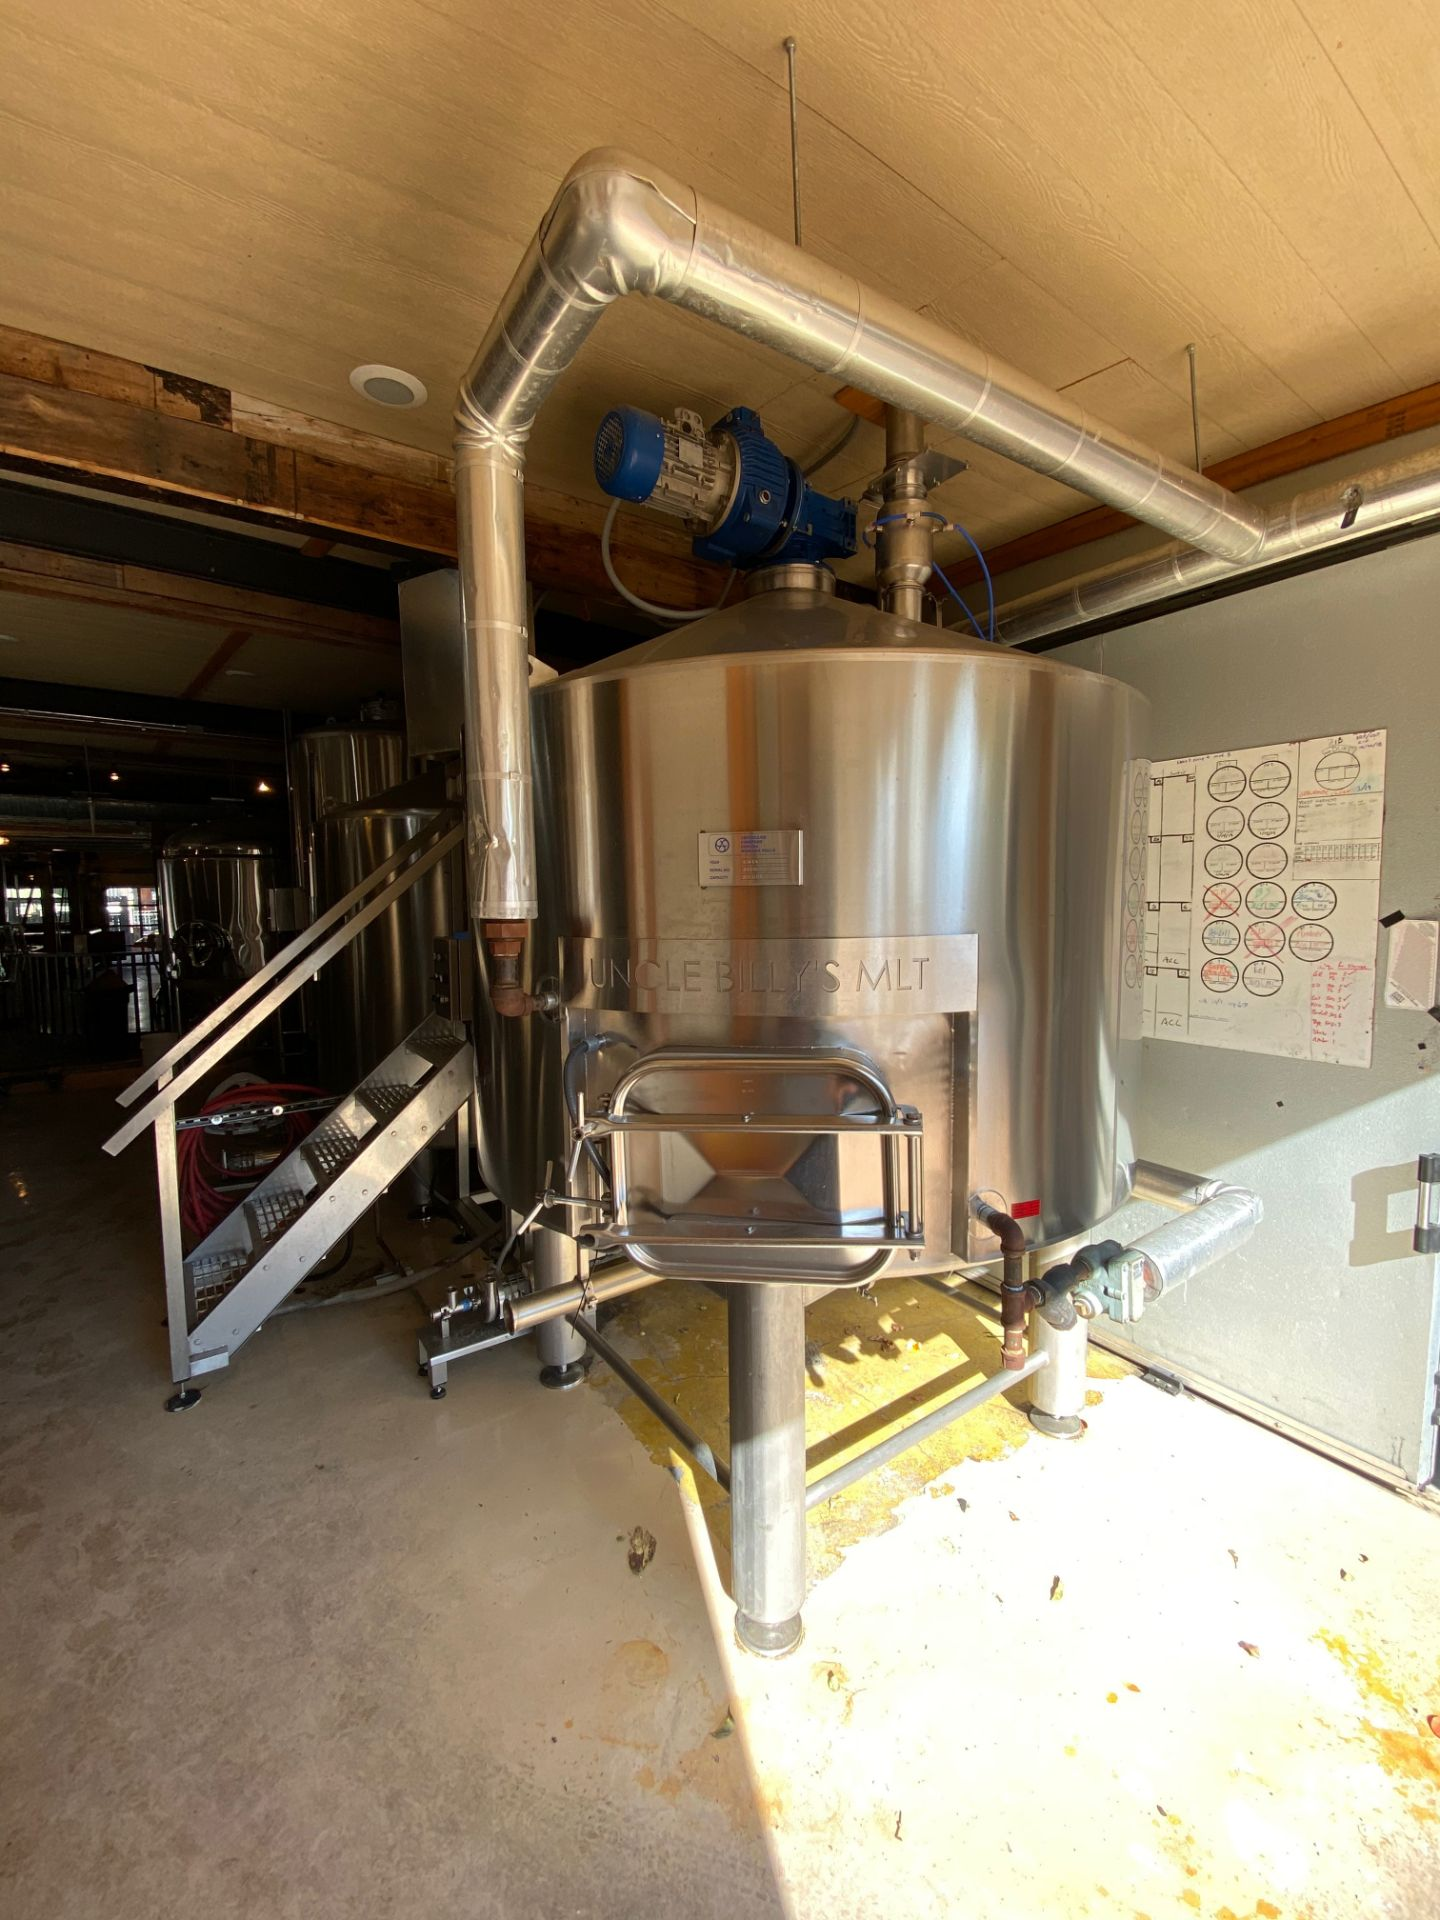 Lot 1 - 2014 Criveller 20 BBL Brewhouse, 2-Vessel System, Jacketed Mash/Laute | Sub to Bulk | Rig Fee: $1500